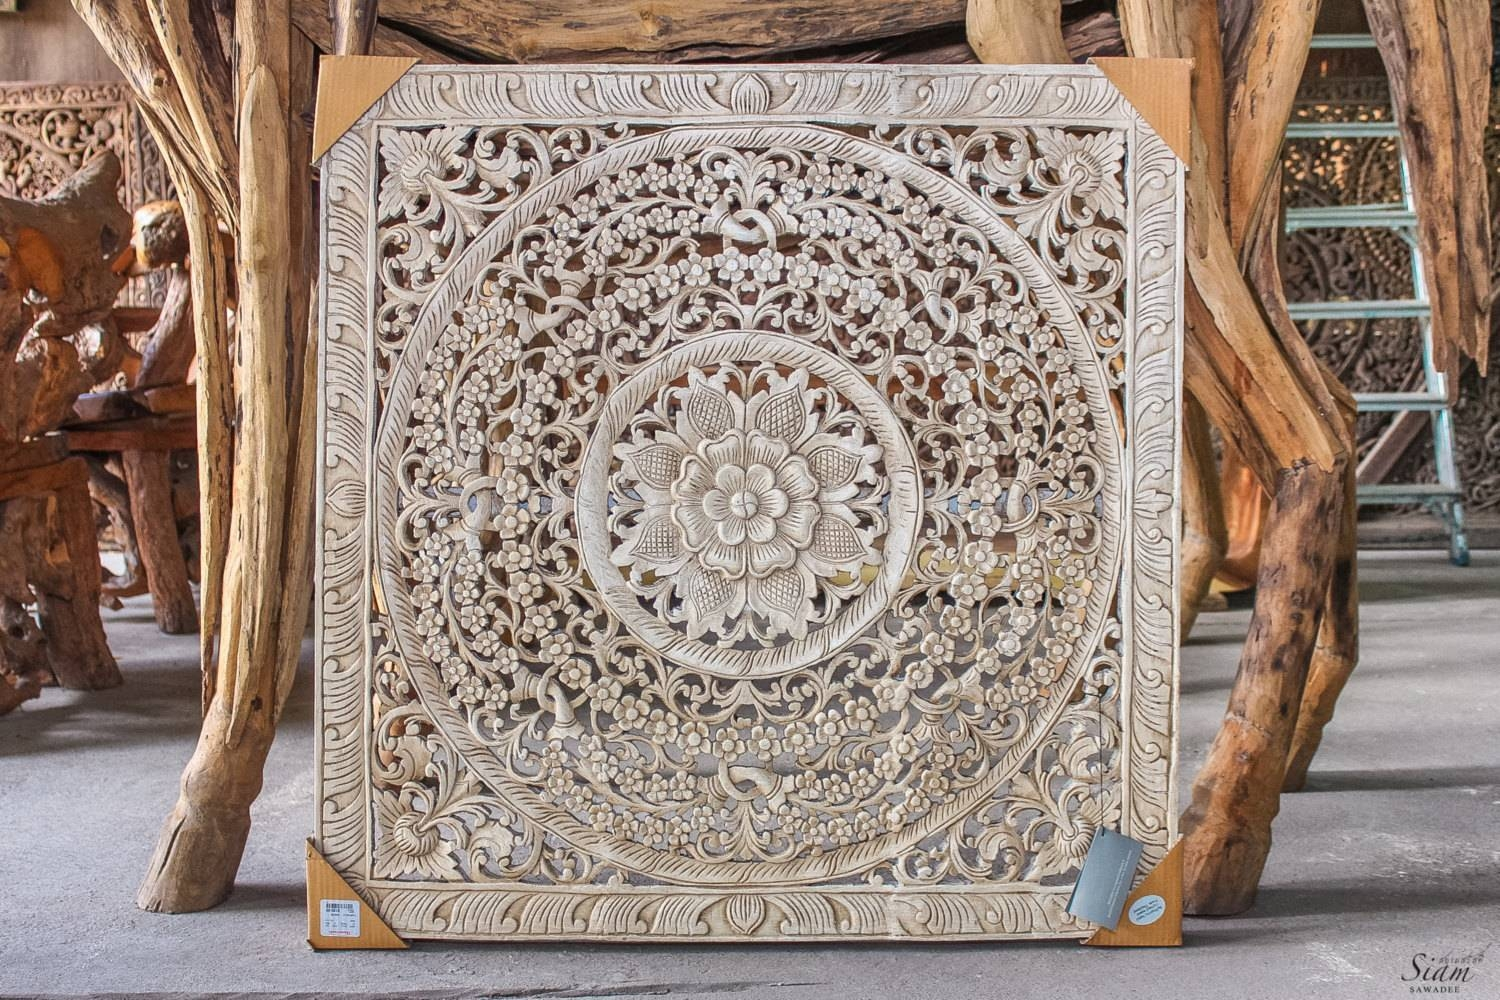 Picture Large Carved Wood Panels Wall Together With Large Carved Intended For Recent Wood Carved Wall Art Panels (View 8 of 25)